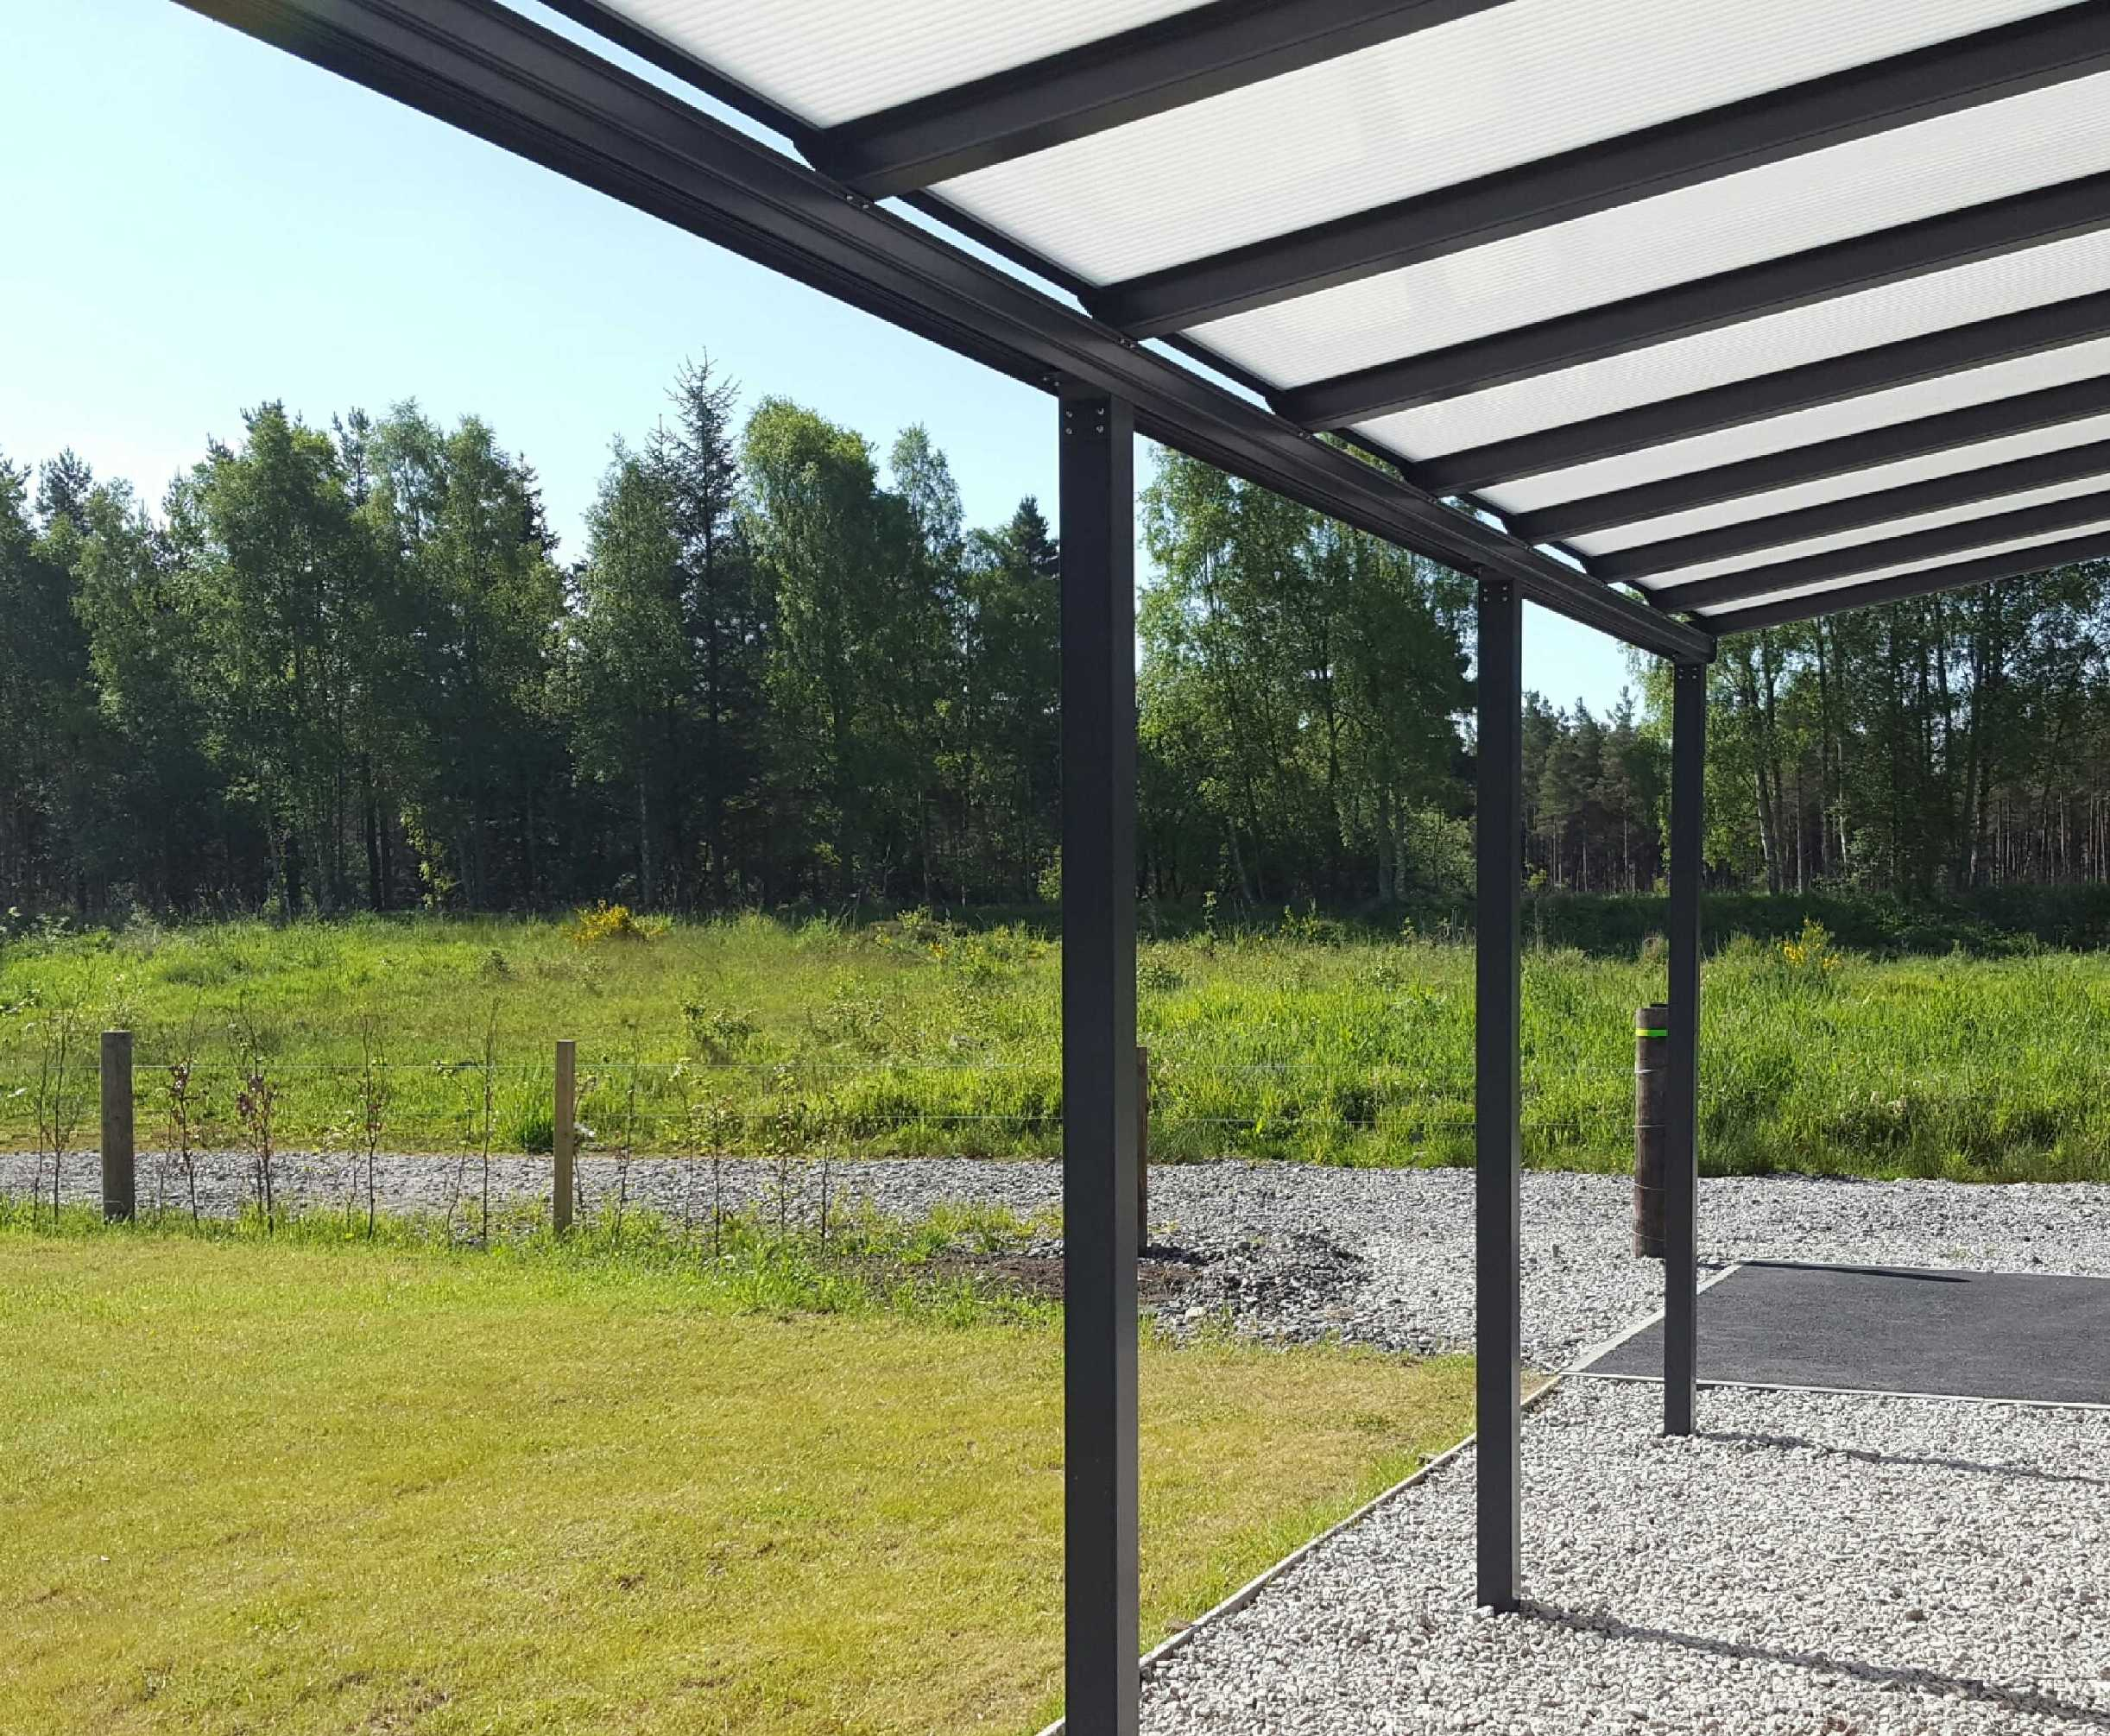 Omega Smart Lean-To Canopy, Anthracite Grey, 16mm Polycarbonate Glazing - 3.5m (W) x 4.5m (P), (3) Supporting Posts